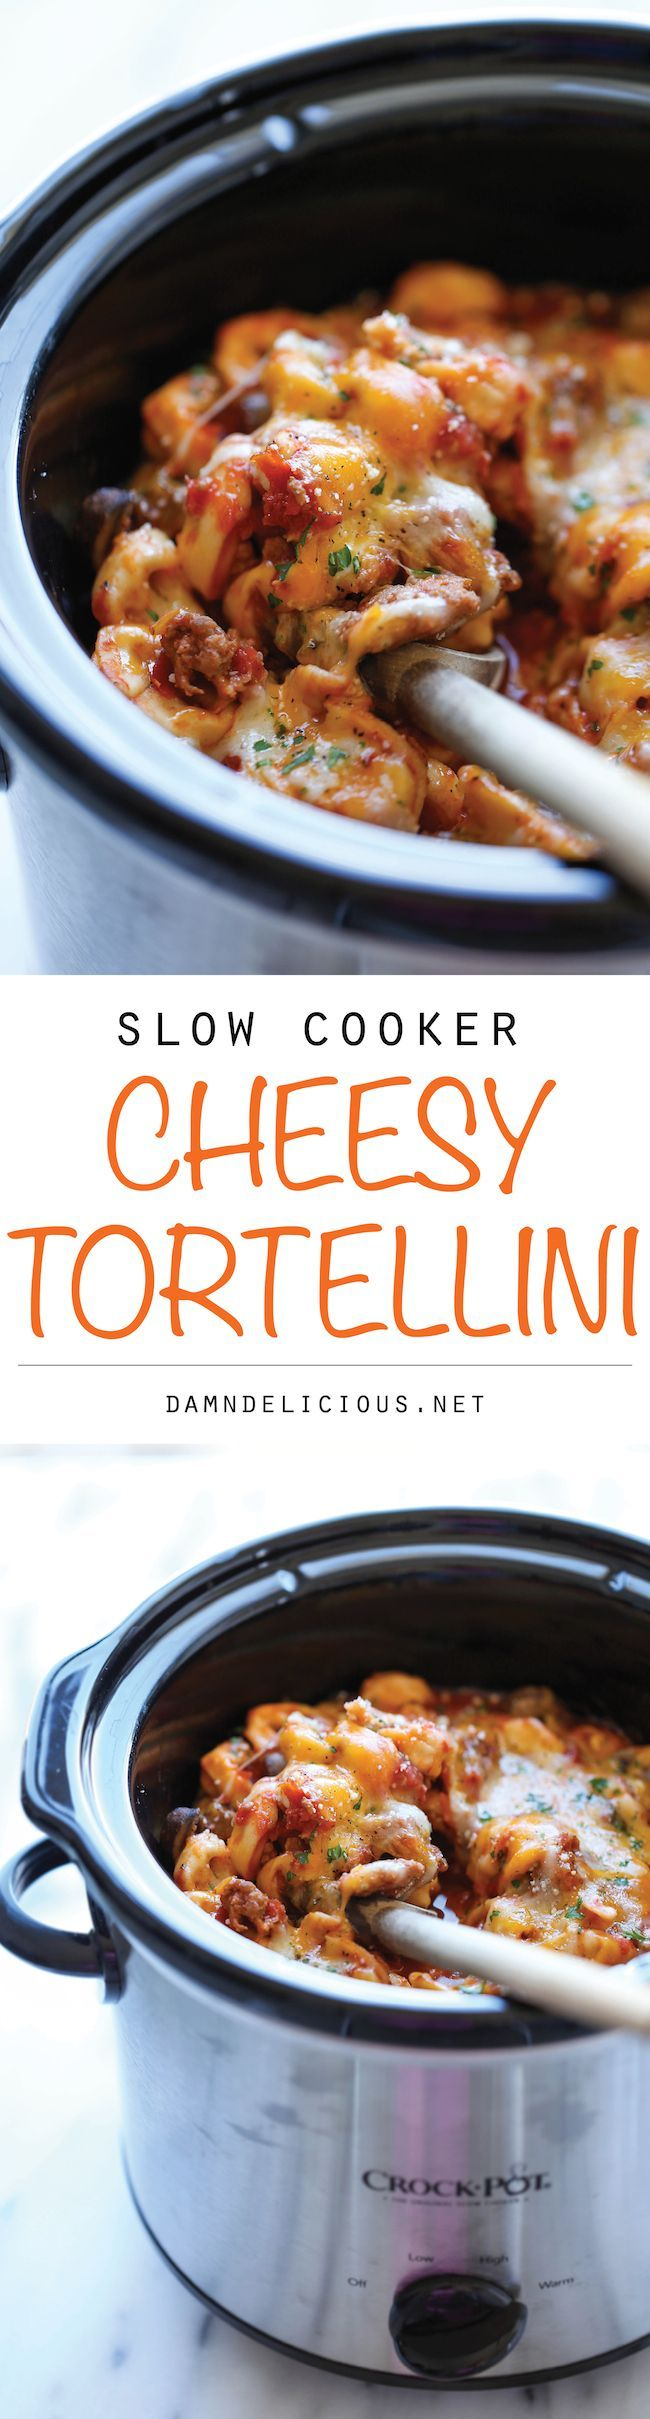 Slow Cooker Cheesy Tortellini - There's nothing better than coming home to the cheesiest tortellini ever, and yes, it's easily made right in the crockpot!